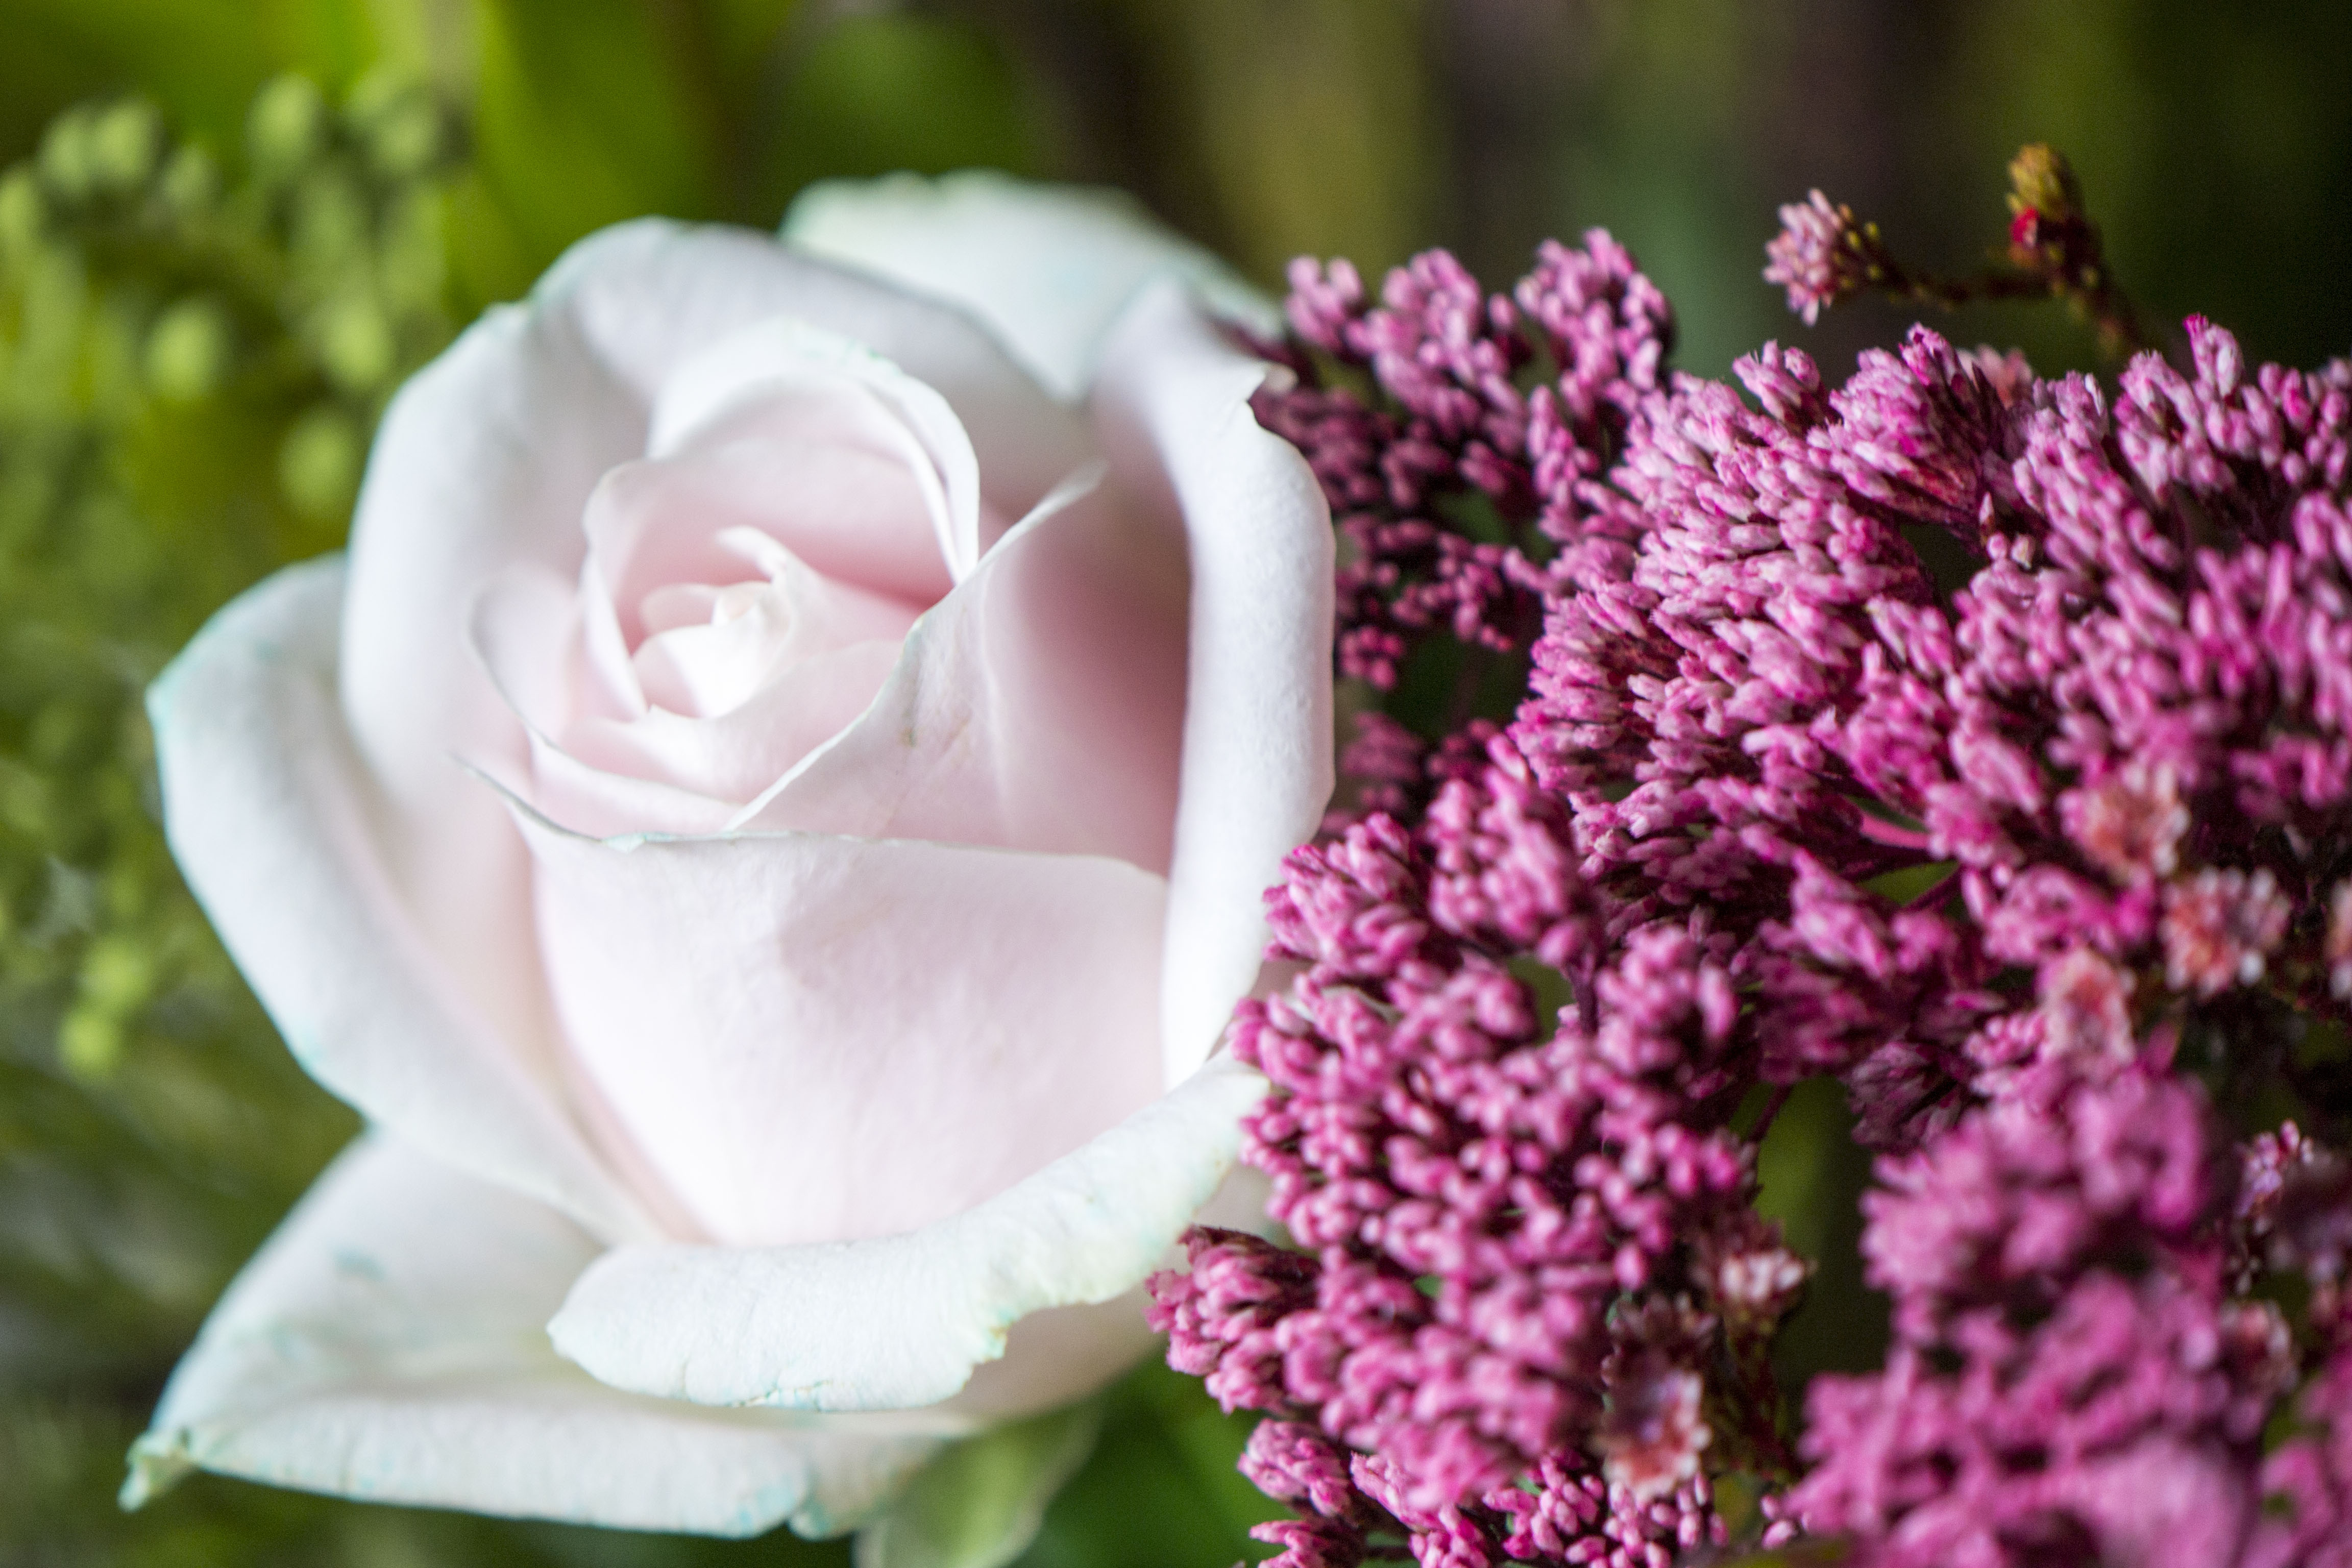 How To Care For A Bouquet Of Fresh Cut Flowers